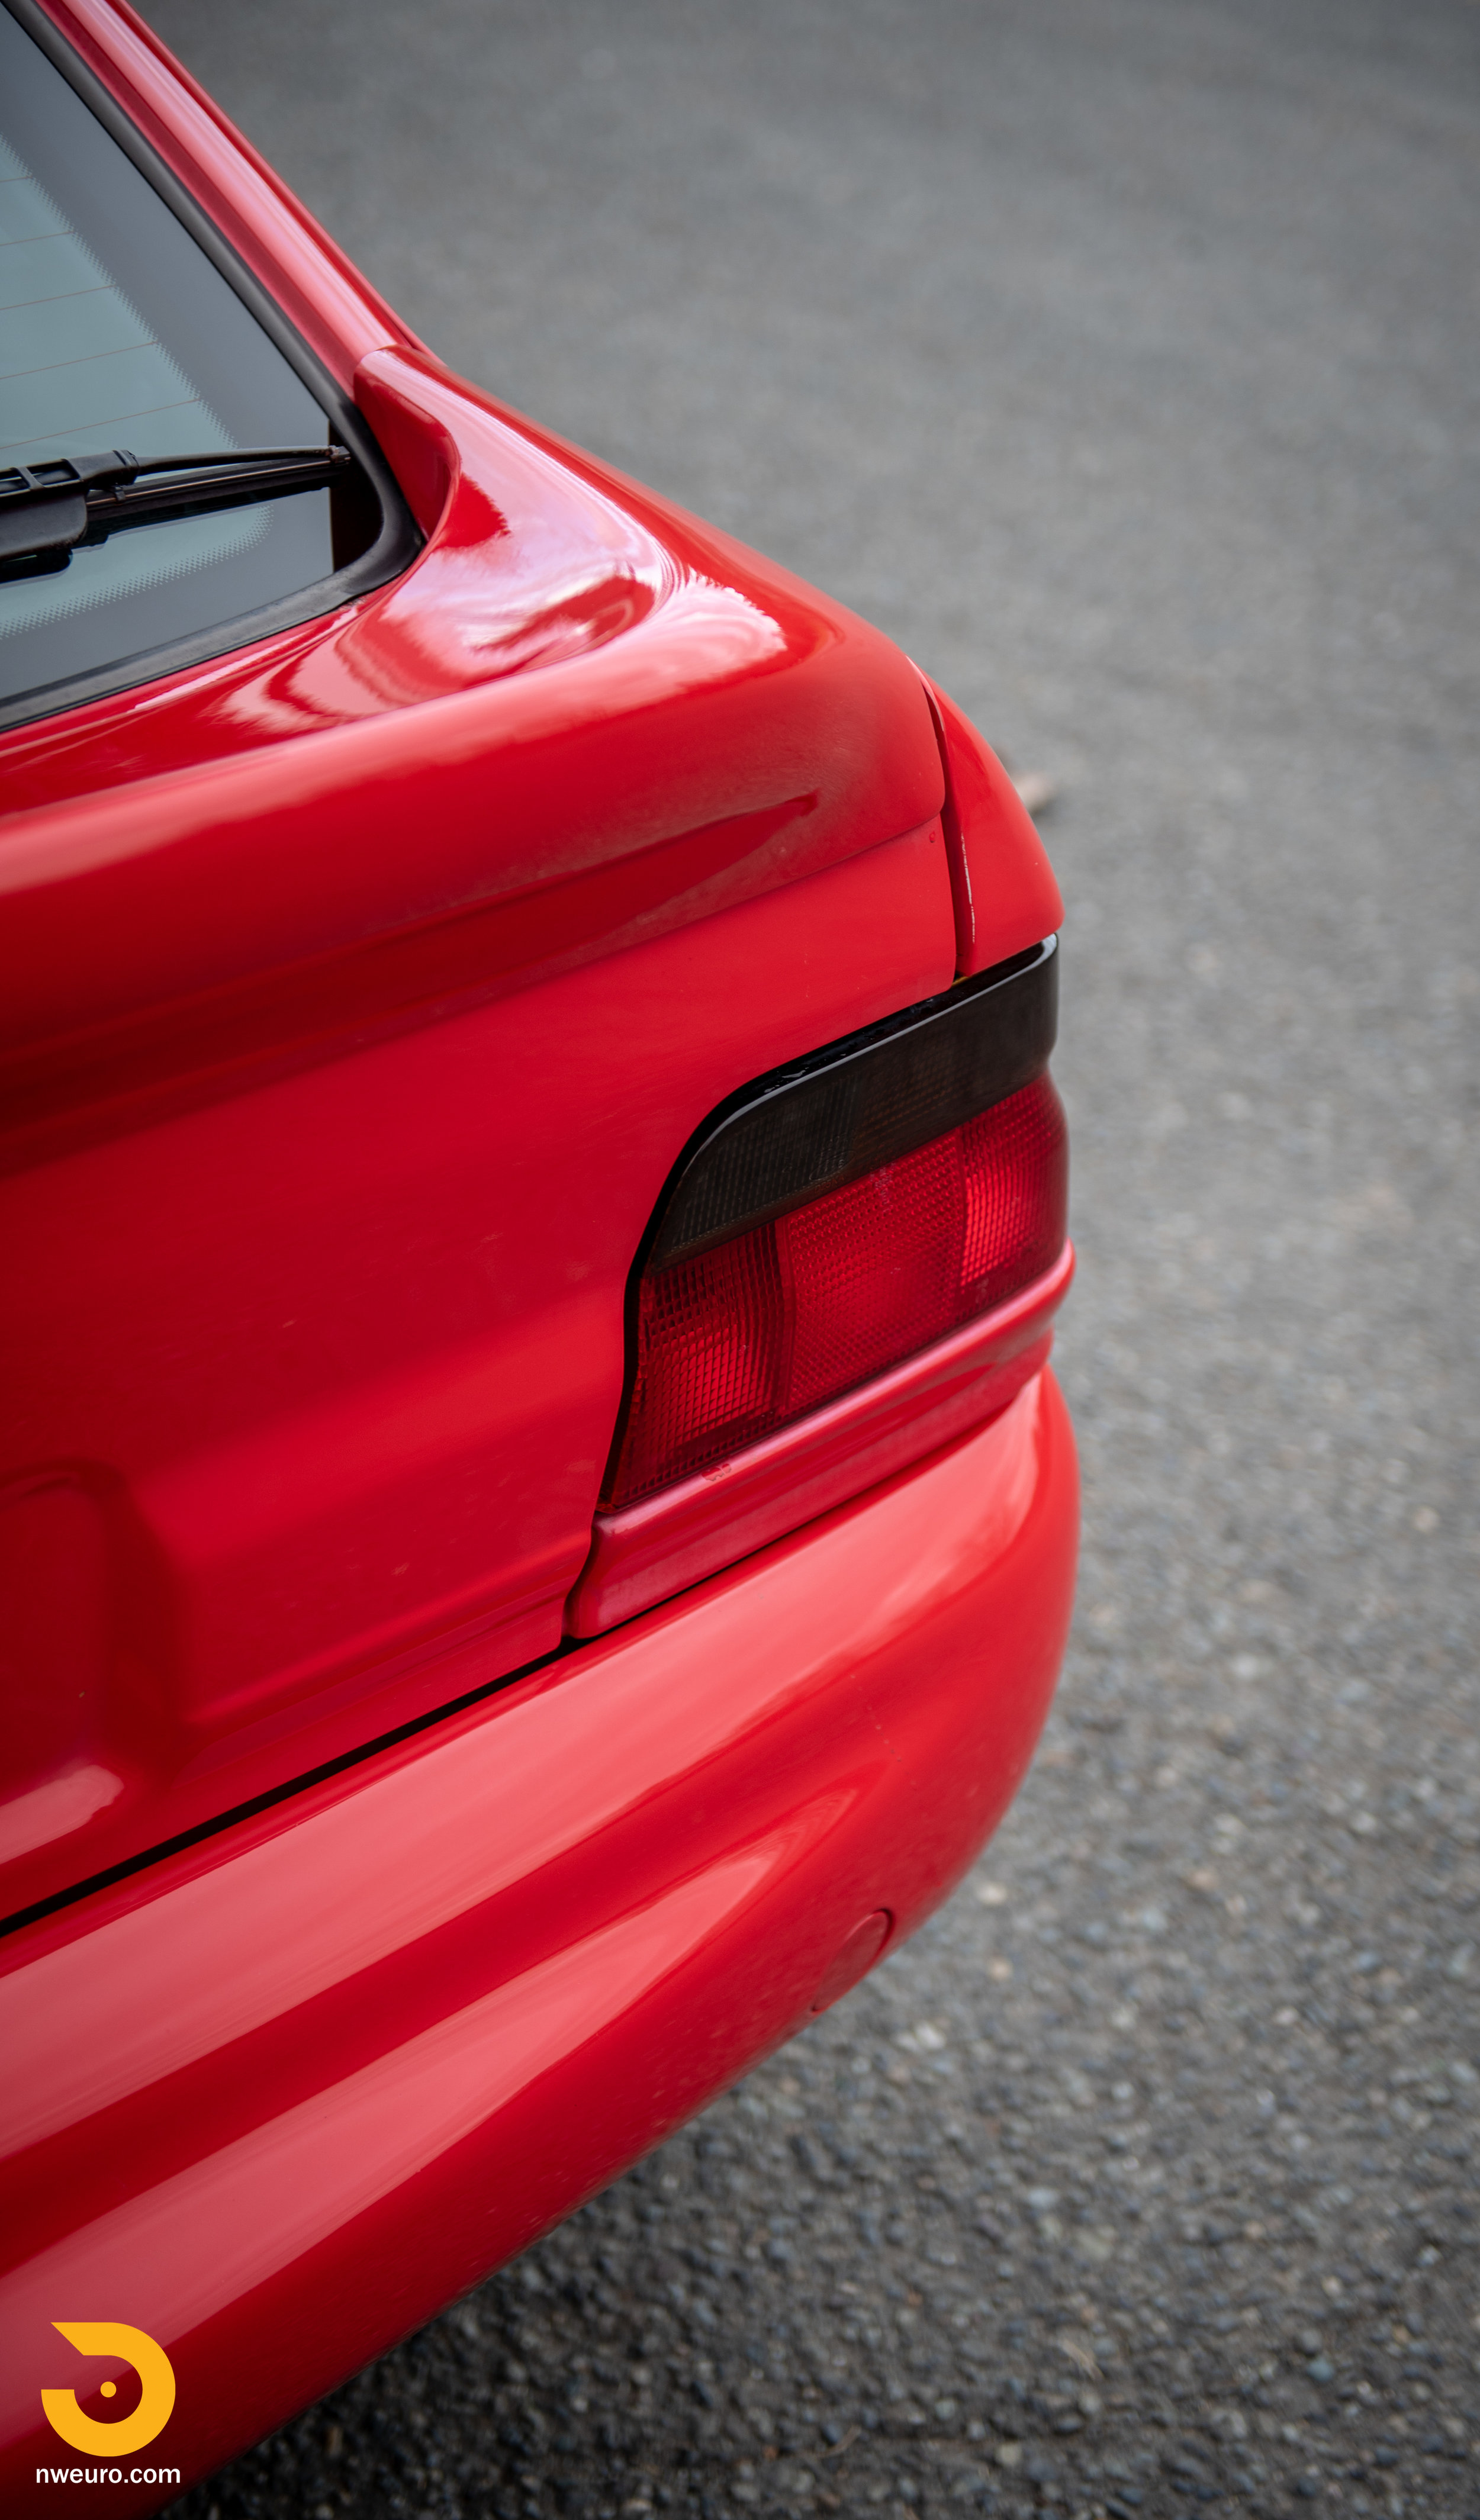 1993 Ford Escort Cosworth RS Red-5.jpg